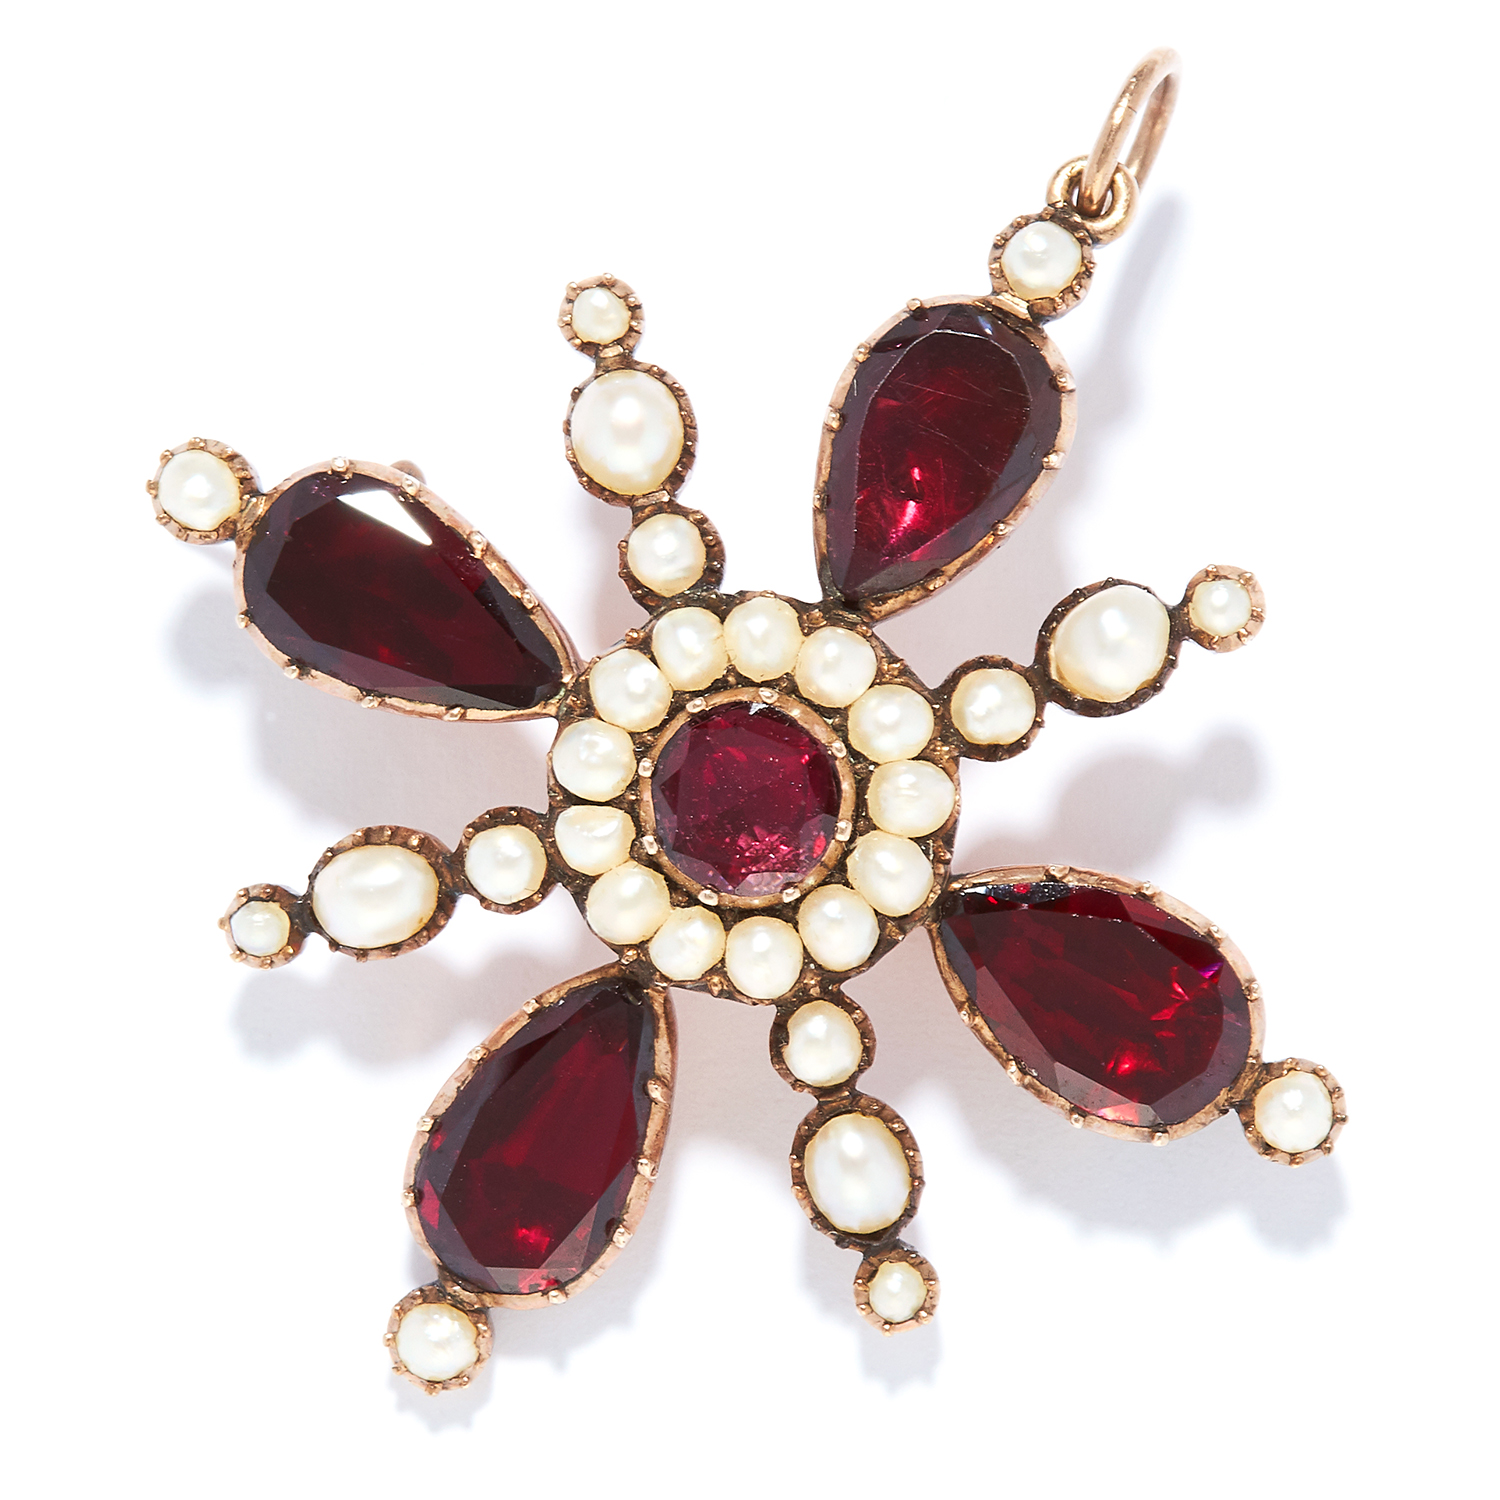 ANTIQUE GARNET AND PEARL PENDANT / BROOCH in yellow gold, set with round and pear cut garnets and